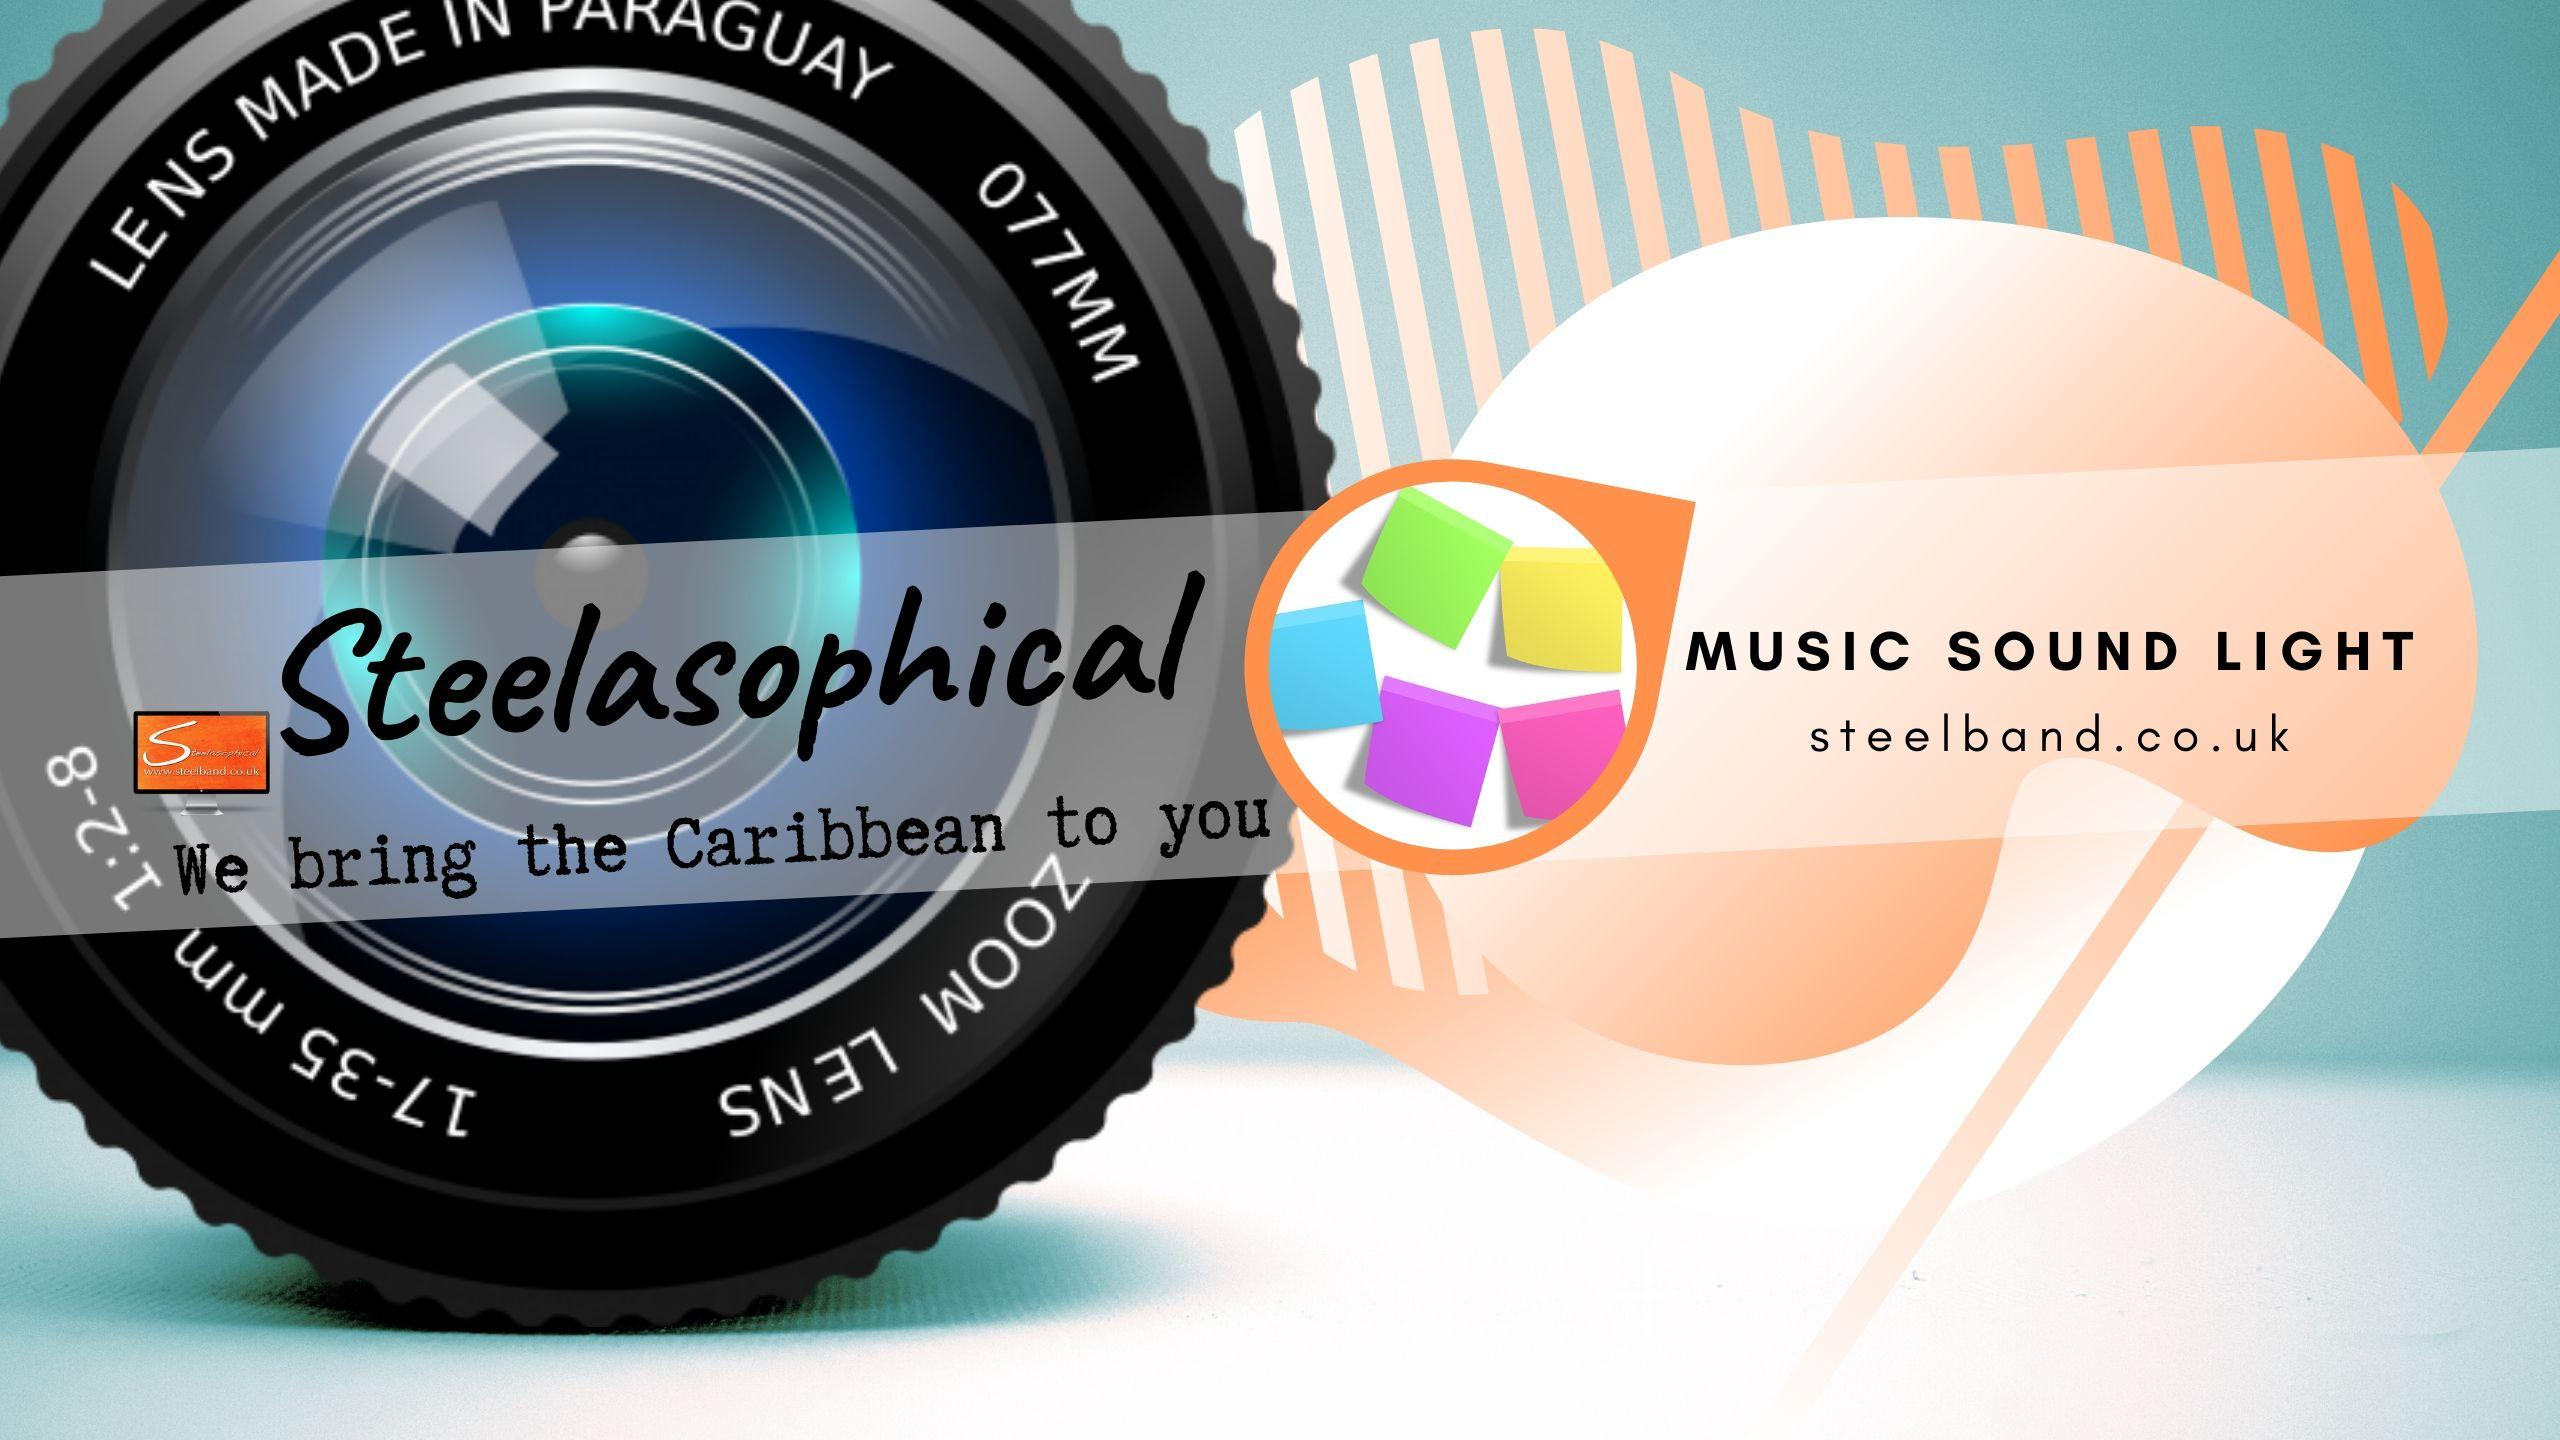 Steelasophical SteelBand for Hire UK steelpans Steeldrums Caribbean Music 0y6y